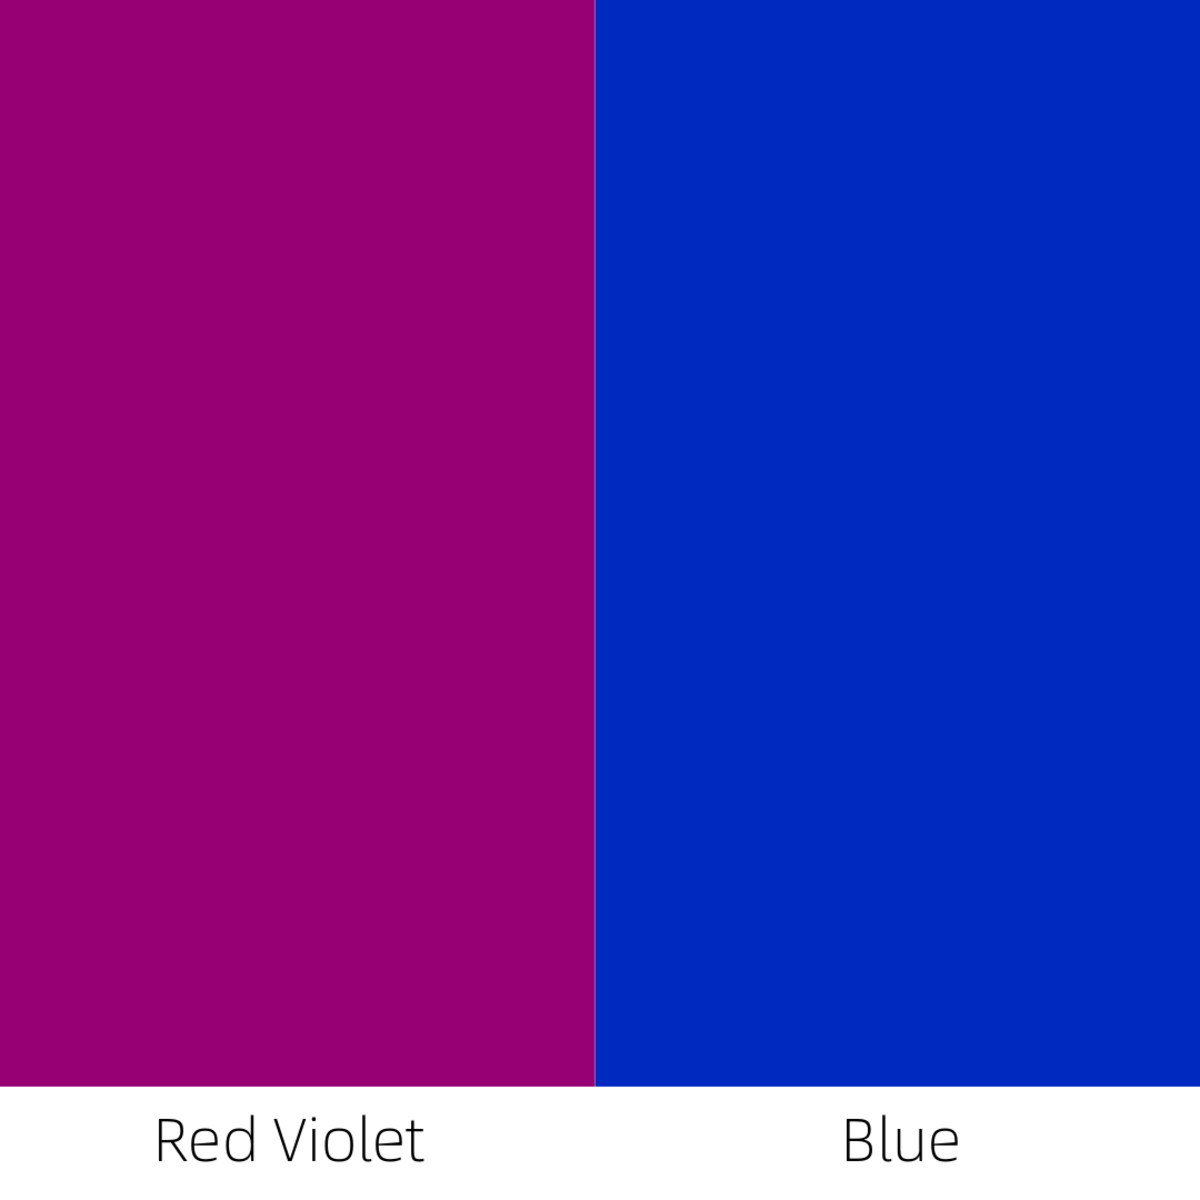 When red-violet is placed next to blue, then the red-violet is perceived as a warm color.